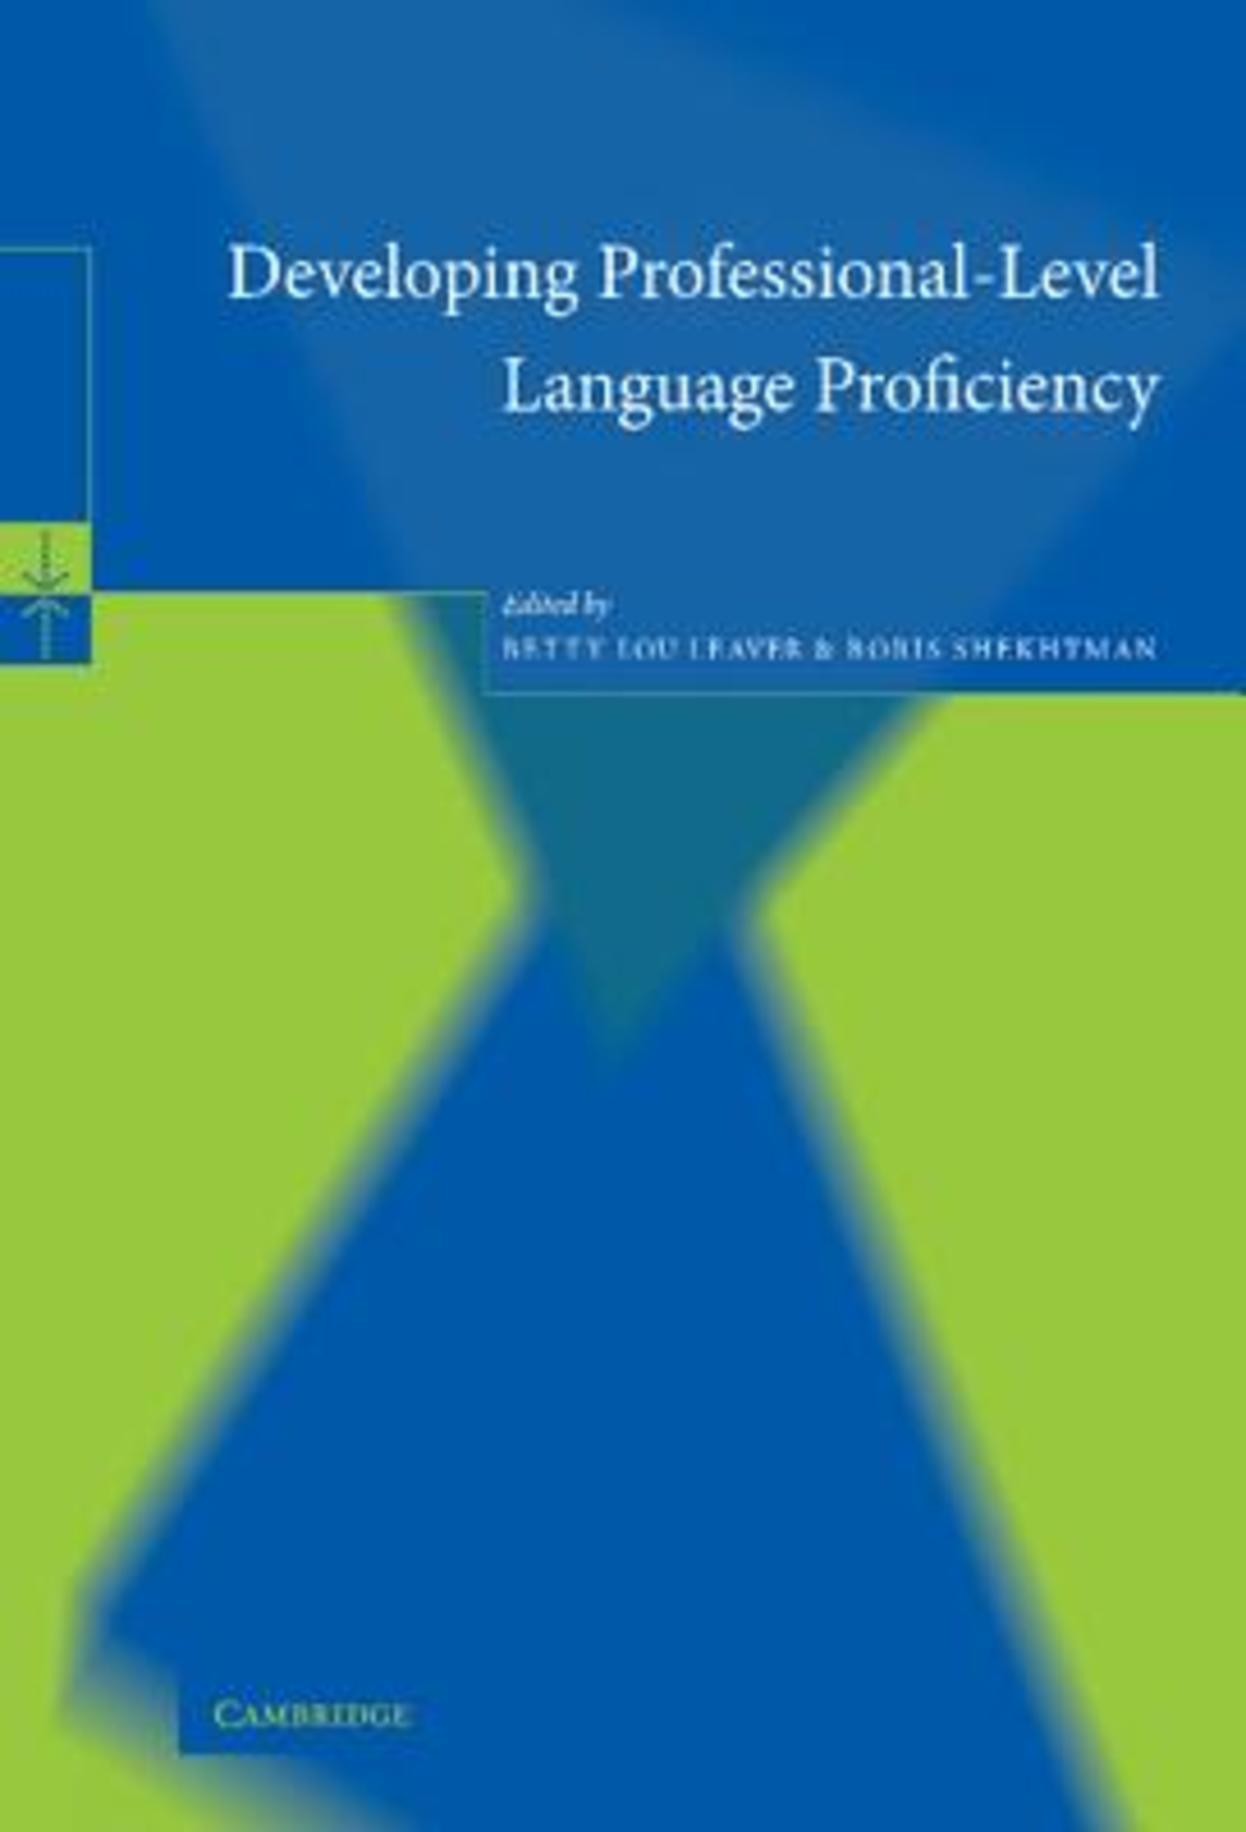 language proficiency in the legal profession